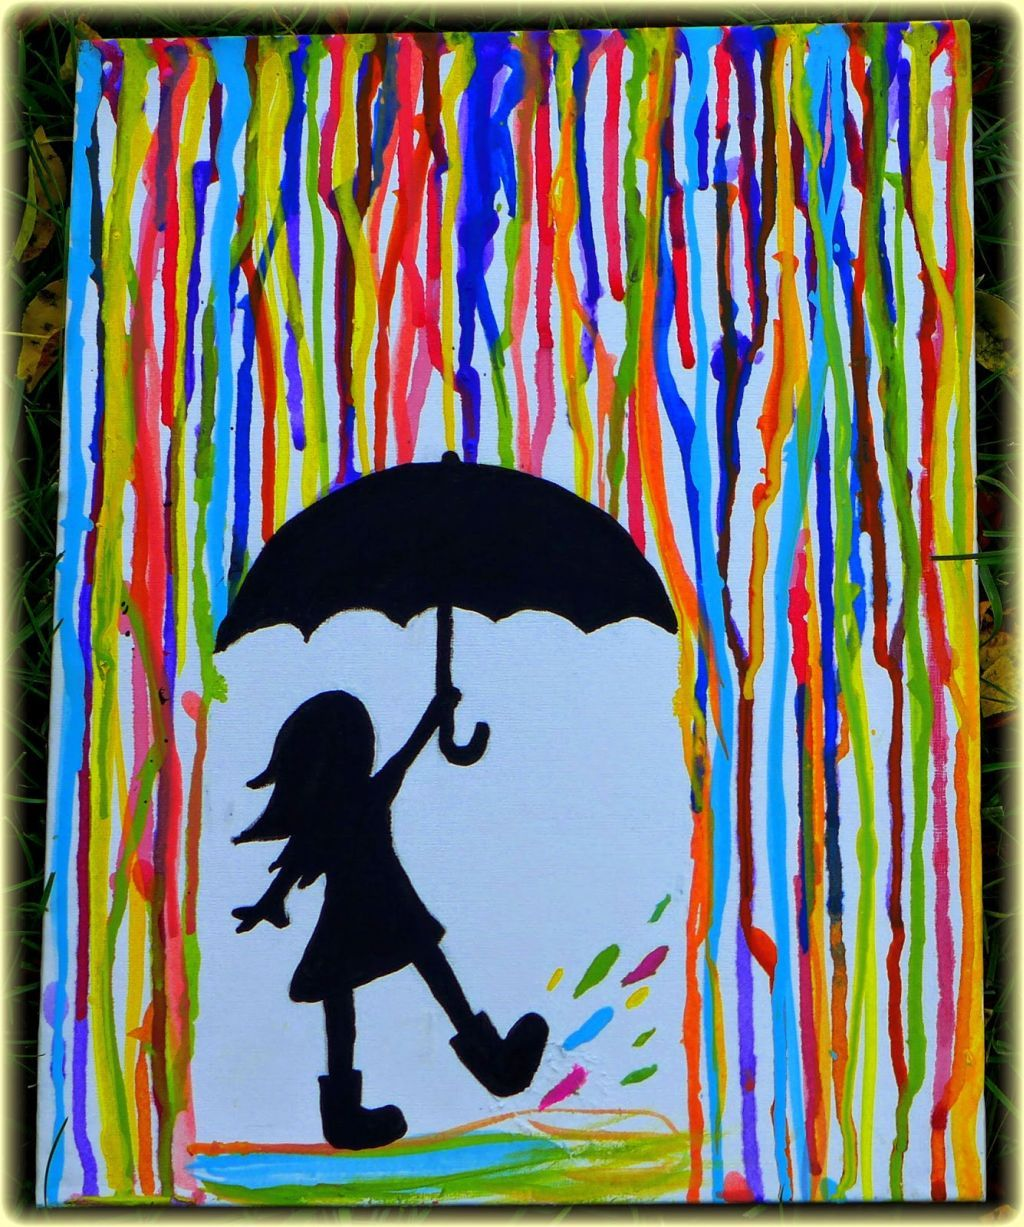 Simple painting ideas canvas girl under the rain for Watercolor ideas easy